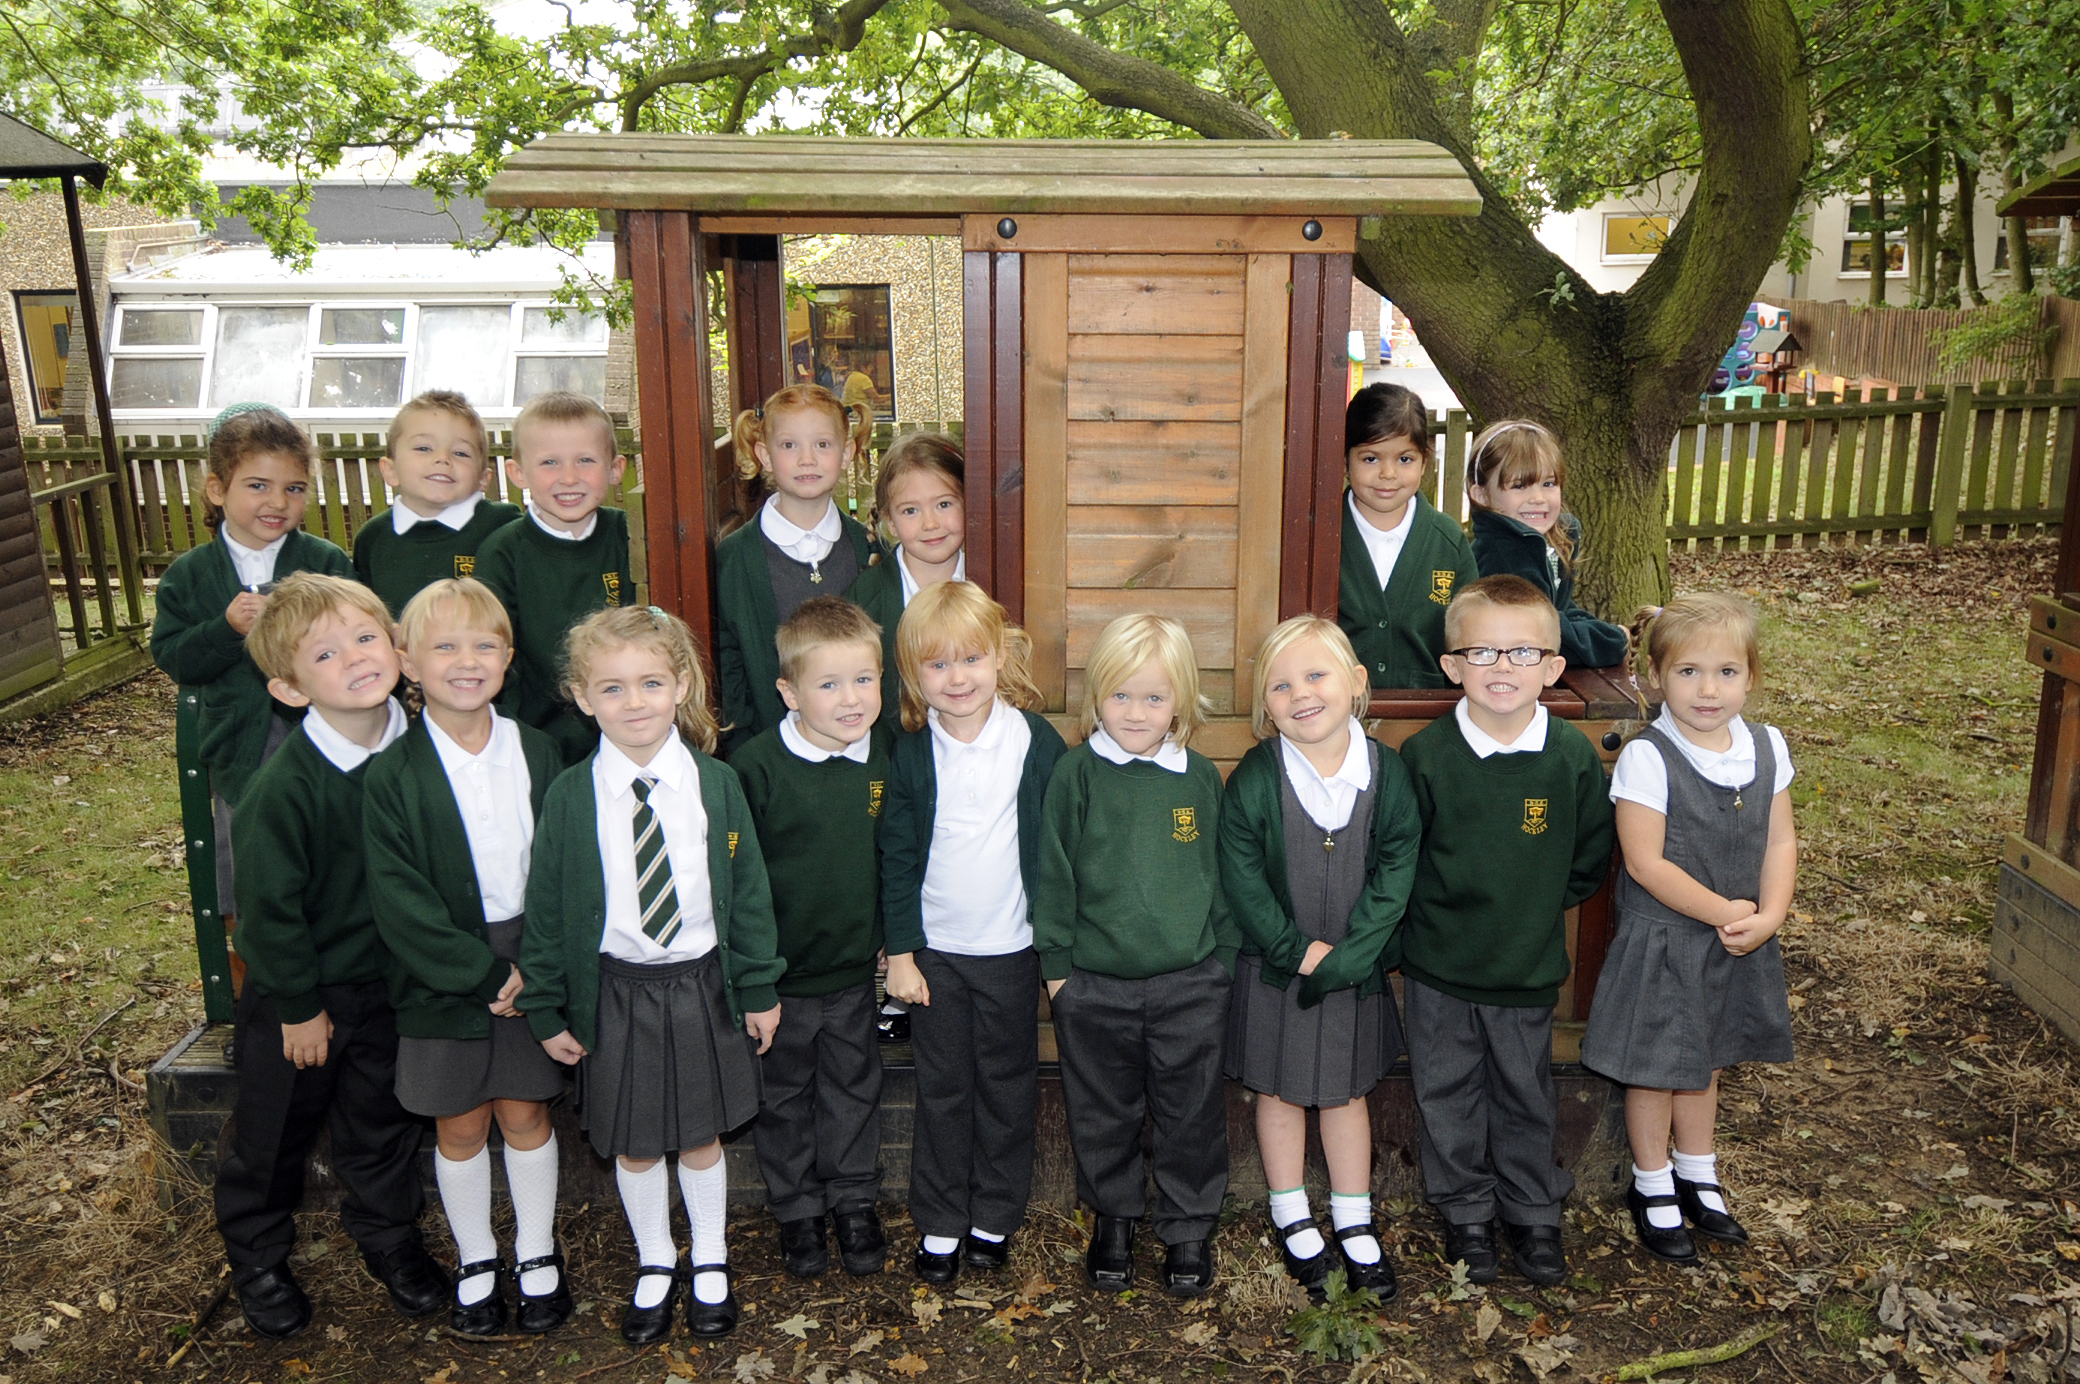 From the archives: Part 2 of the 2010 primary school starters pictures